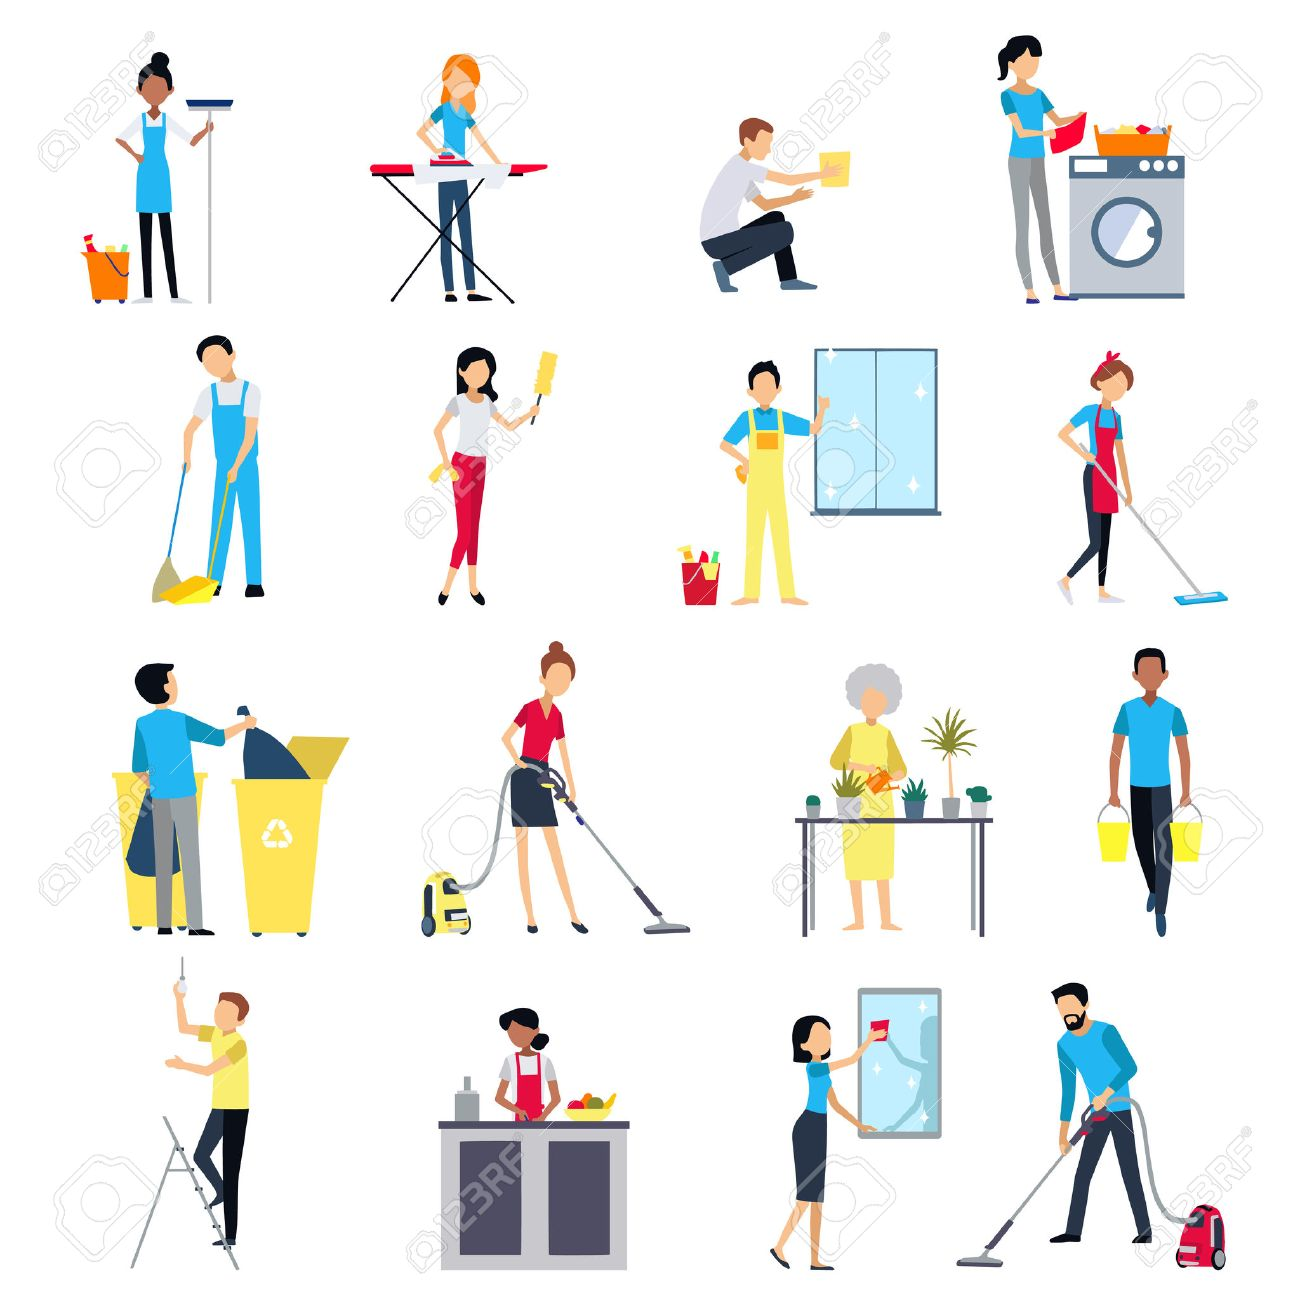 Cleaning people flat colored icons set with men and women house working cleaning washing isolated illustration Stock Vector - 65372456